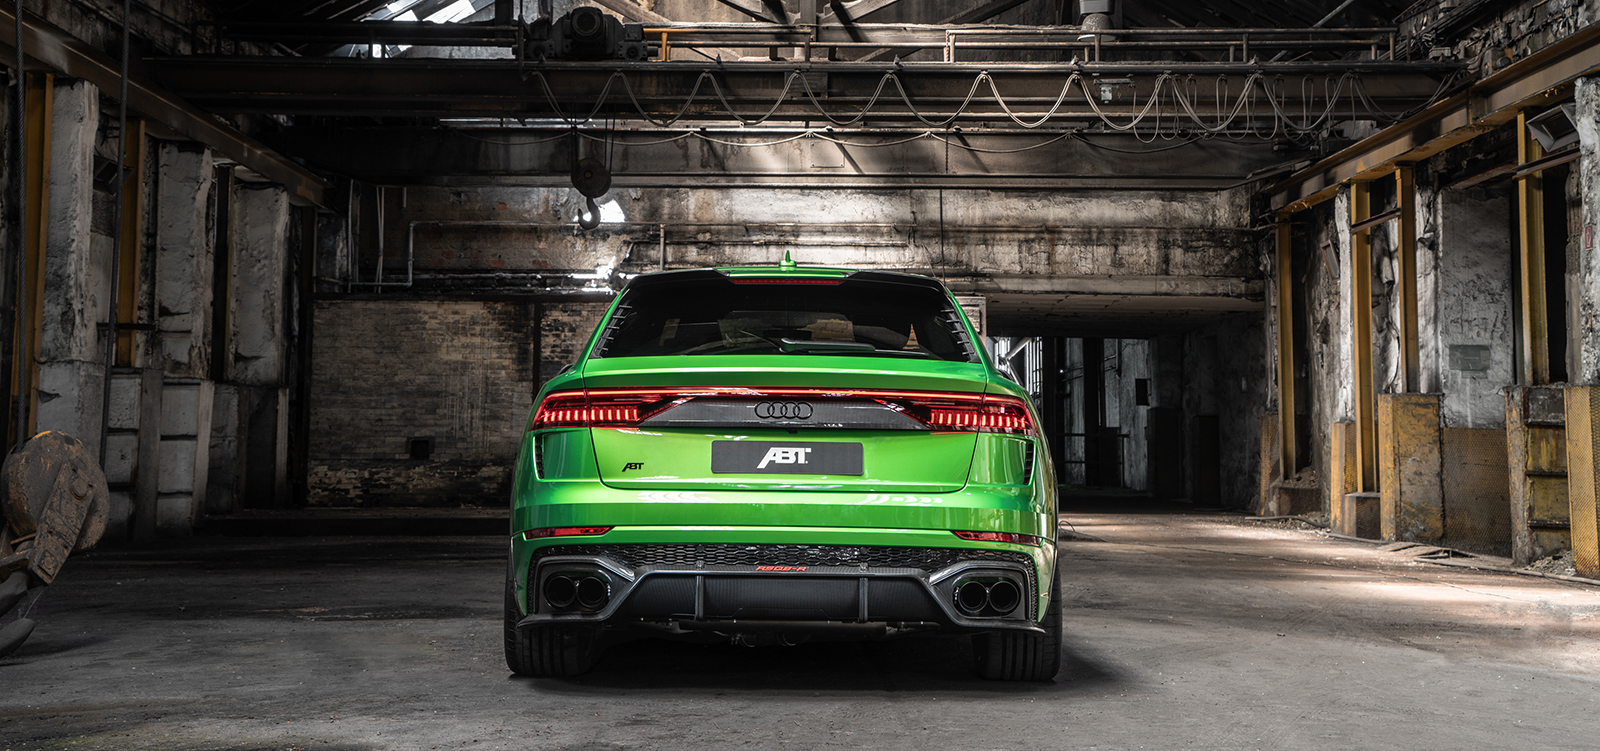 ABT_RSQ8-R_green_HR23_building_rear